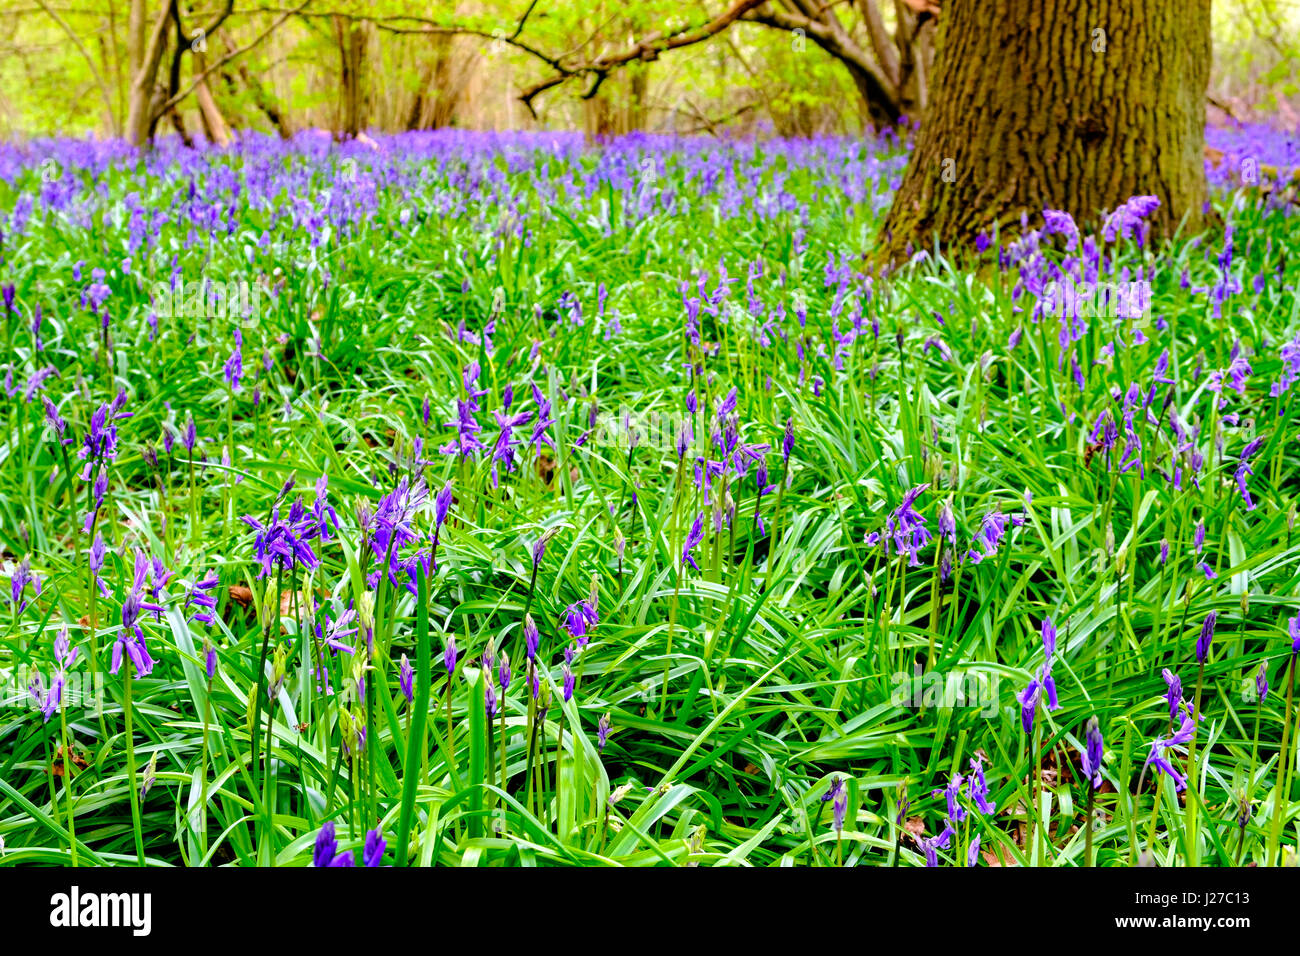 Springtime woodland bluebells in The Chilterns, Buckinghamshire. - Stock Image